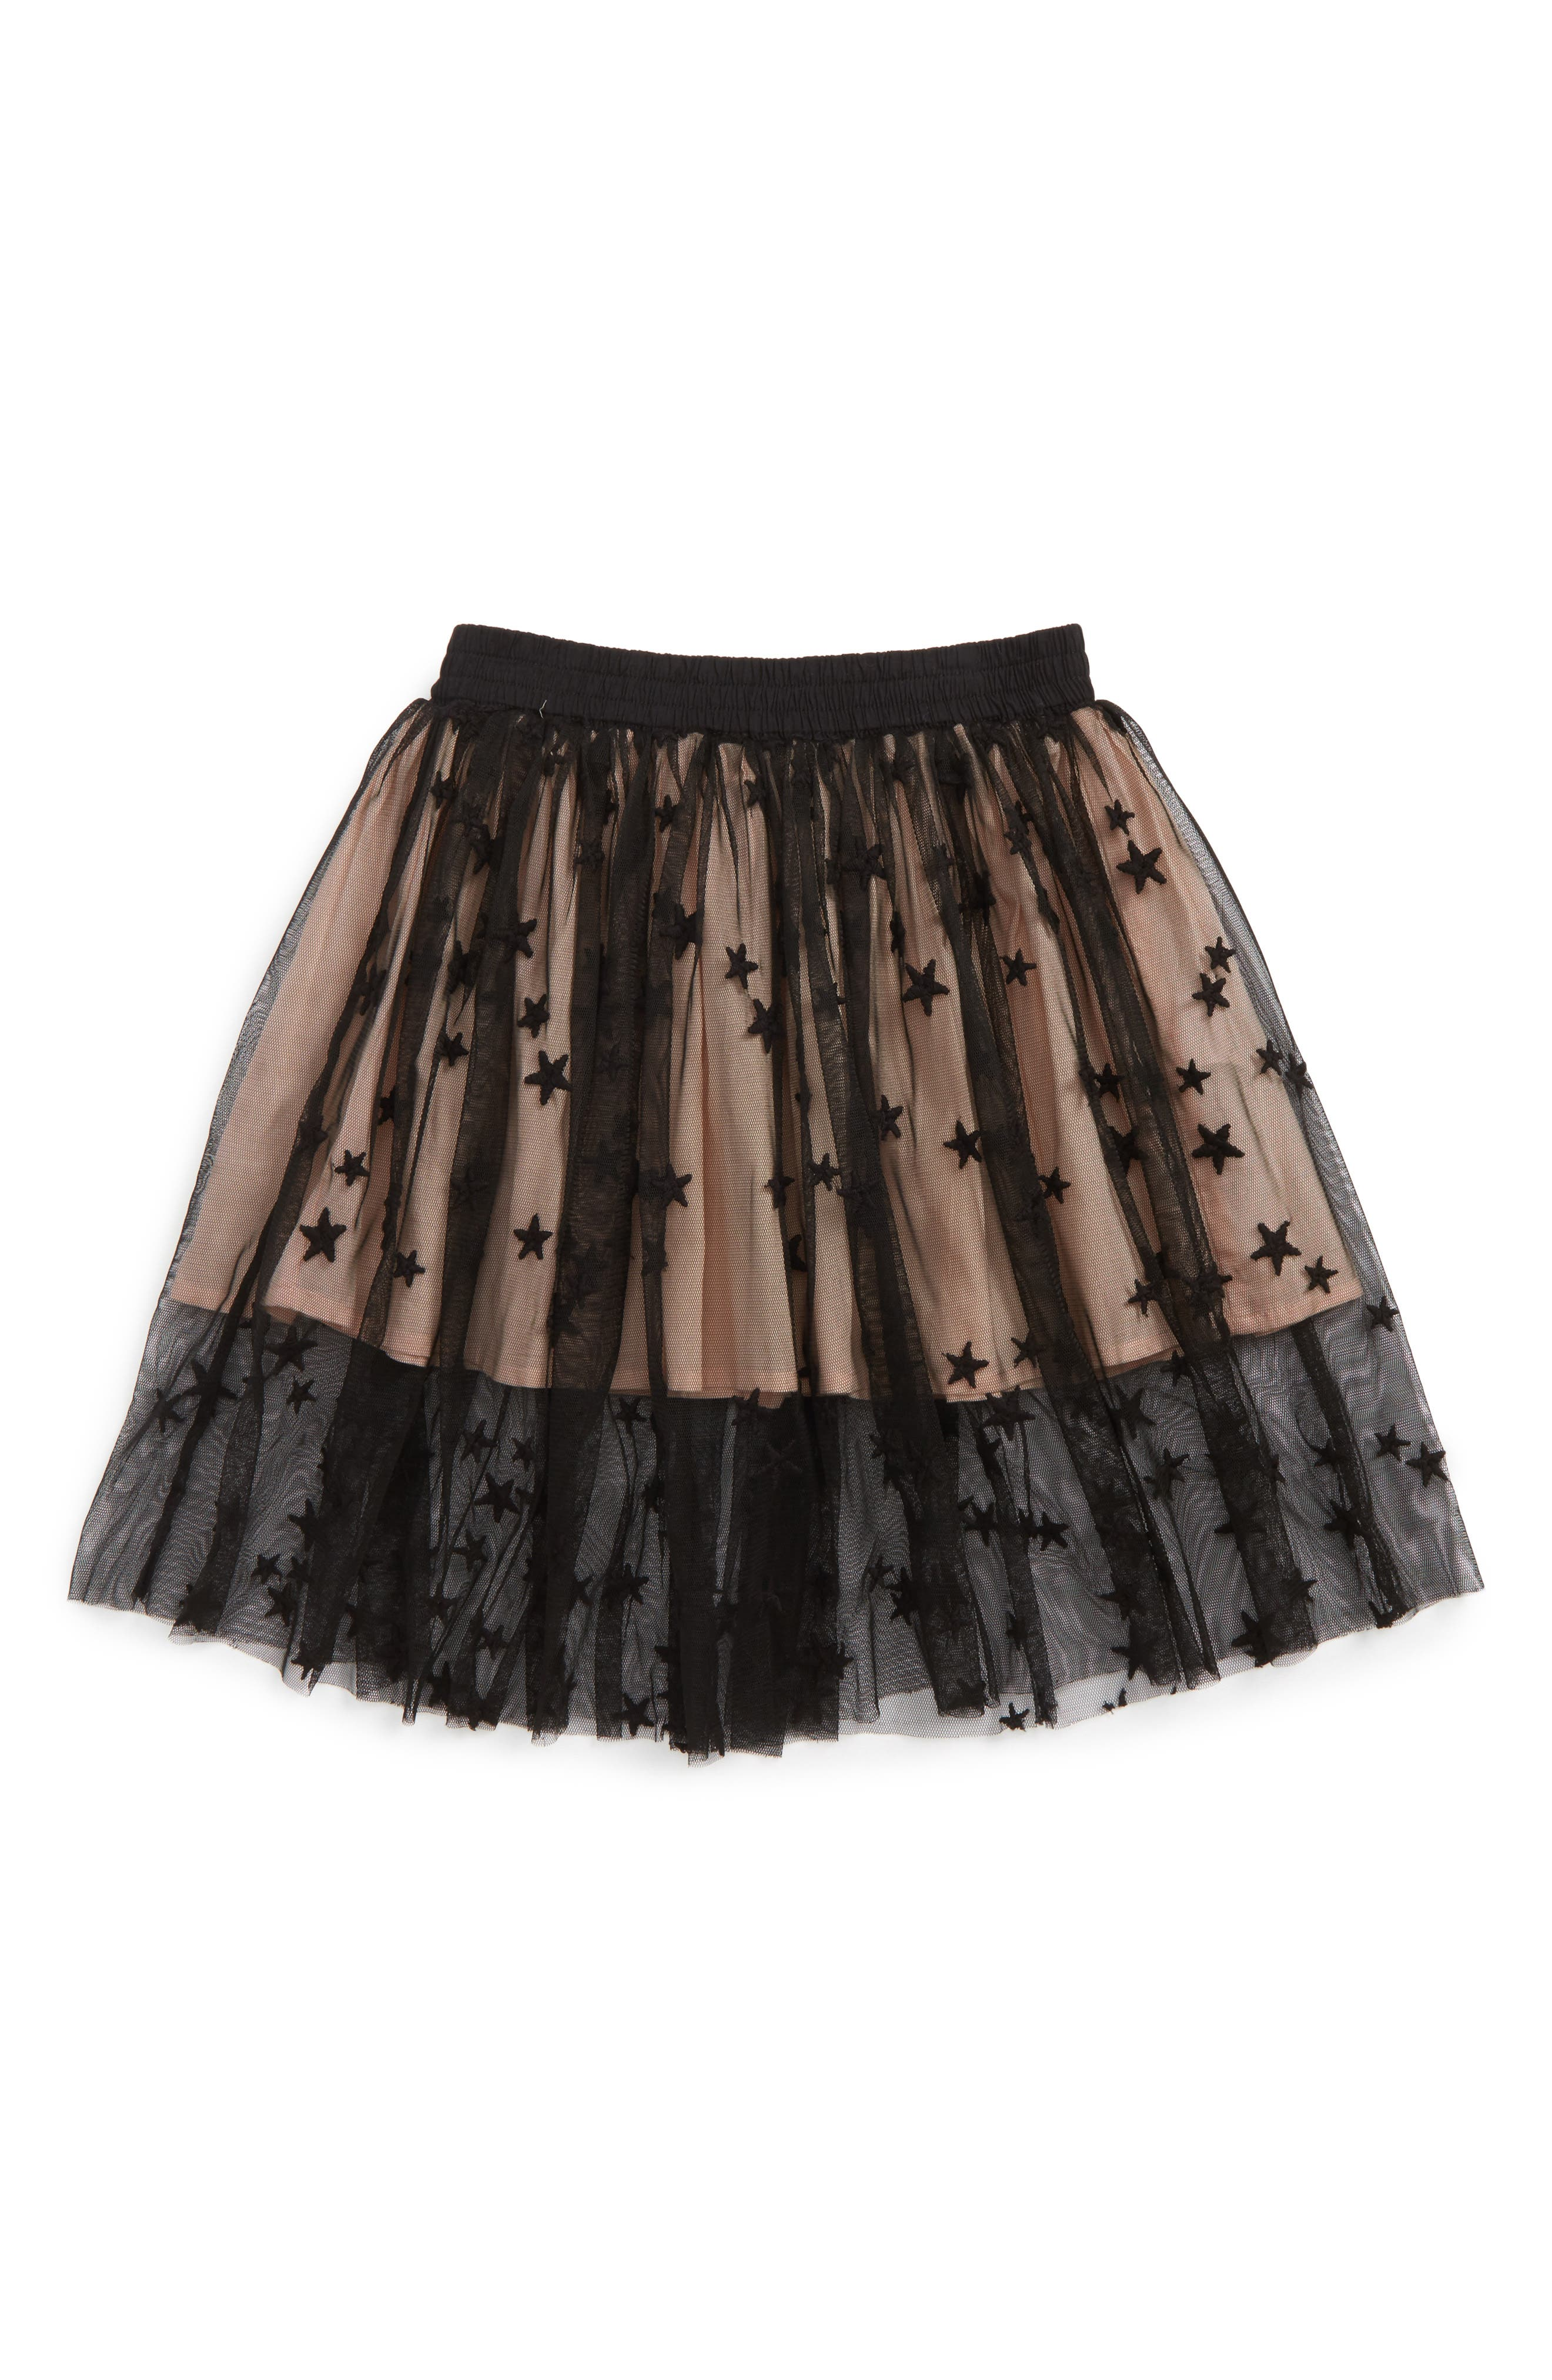 Stella McCartney Kids Amalie Star Tulle Skirt (Toddler Girls, Little Girls & Big Girls)